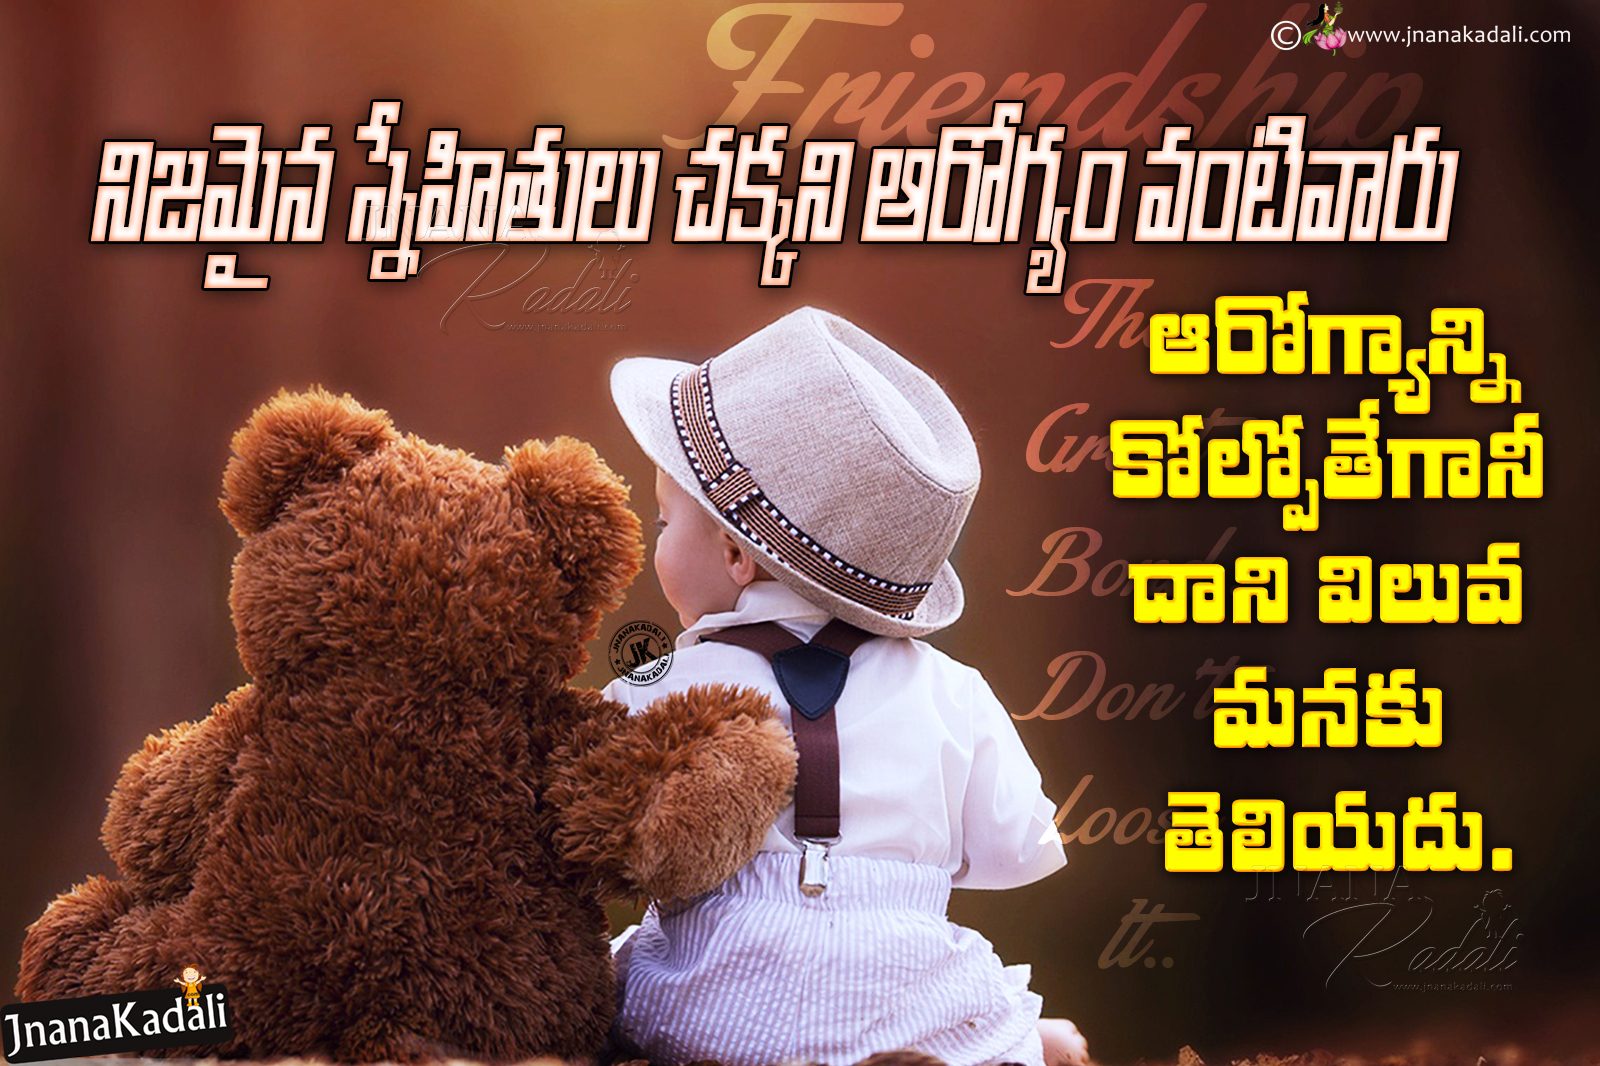 Inspiring Quotes About Friendship True Friendship Inspiring Quotations In Telugu With Friendship Hd